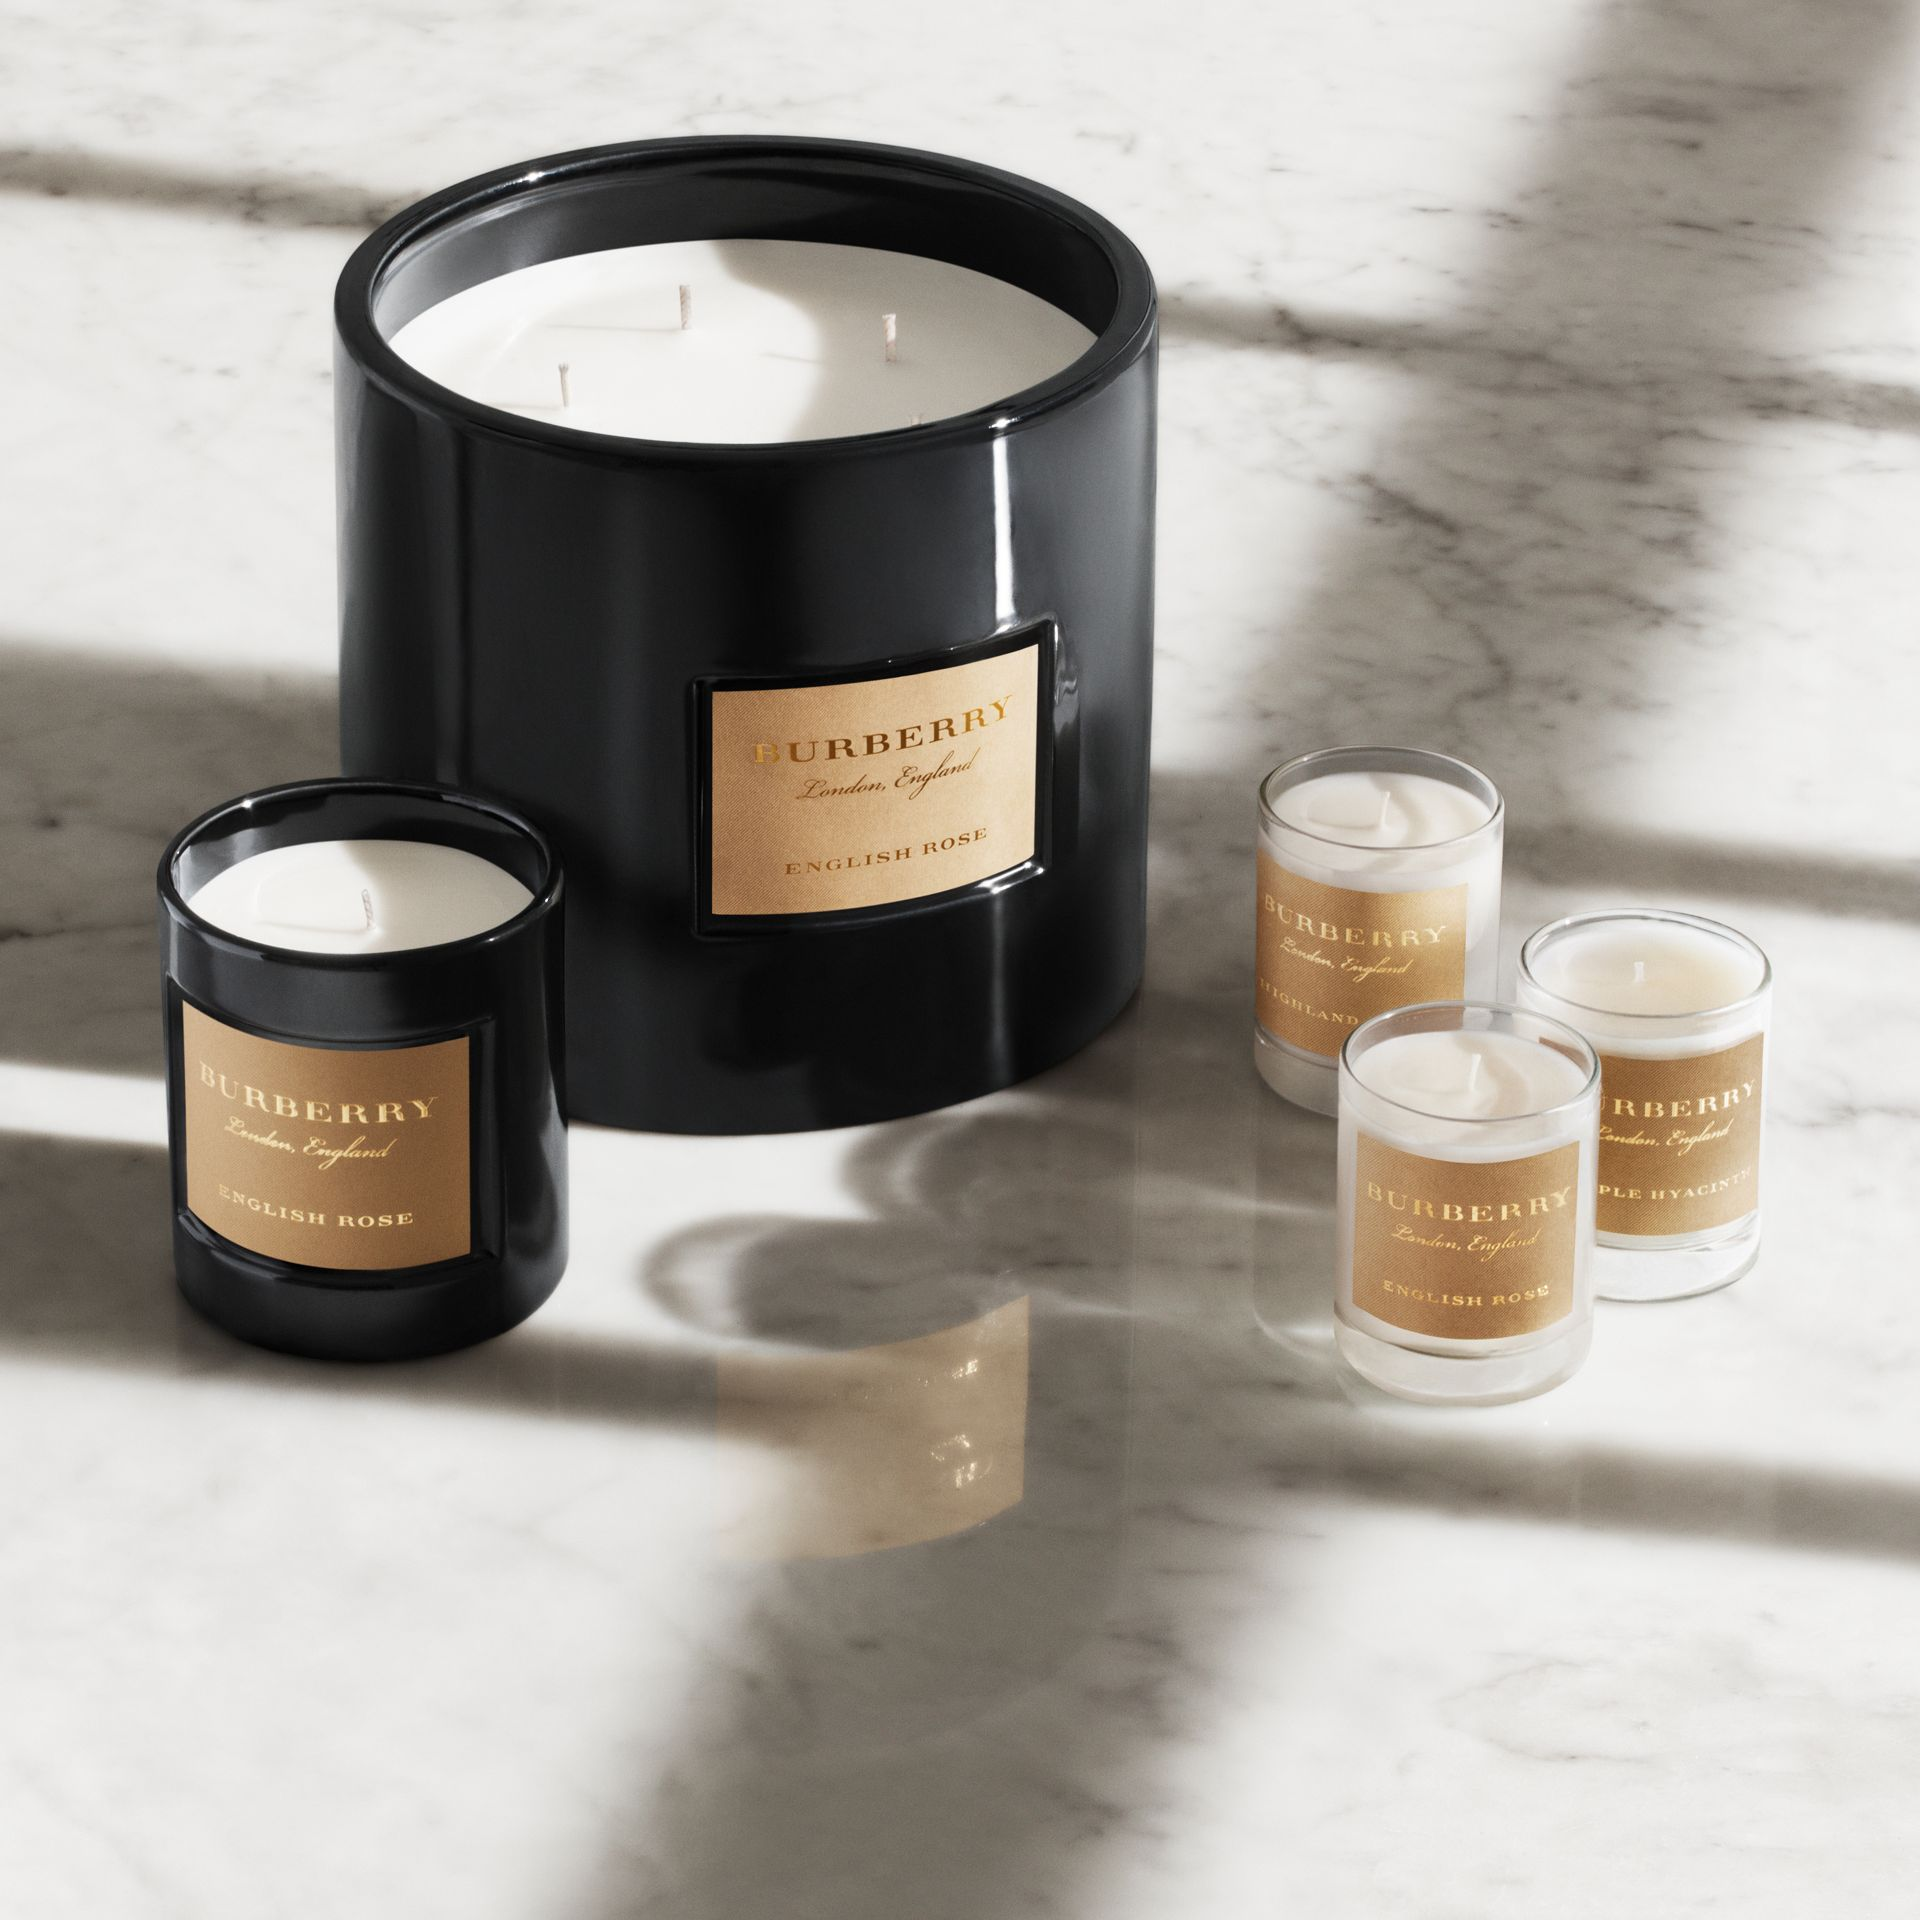 Highland Berry Scented Candle – 2 kg | Burberry - Galerie-Bild 1